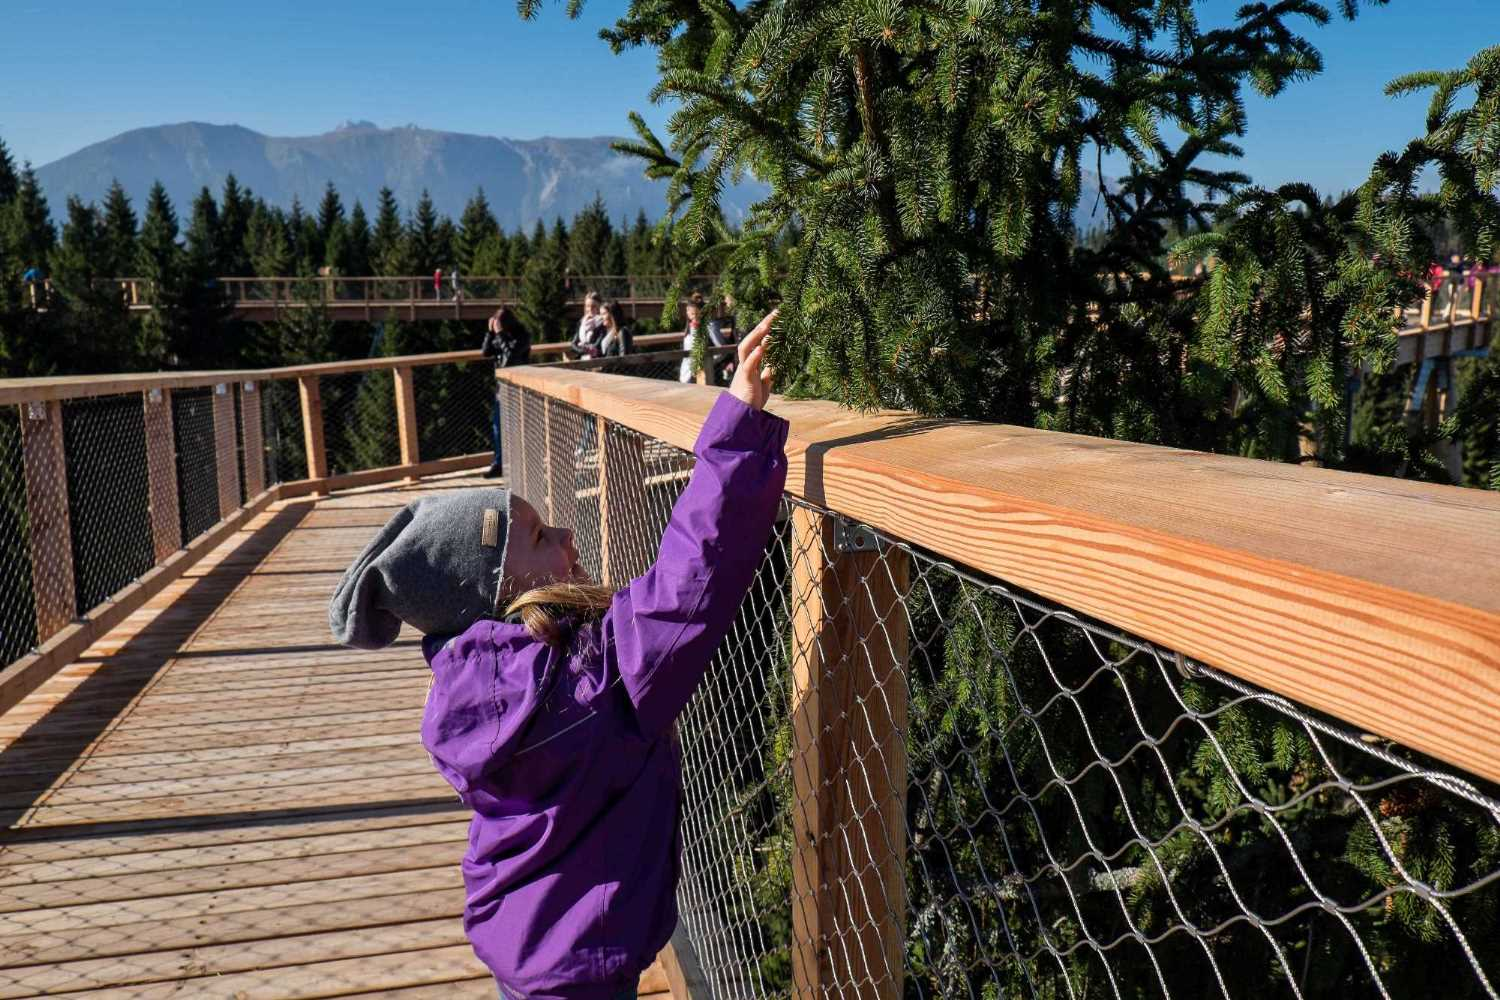 Treetop walk Bachledka | Discover the Tatras from the treetops